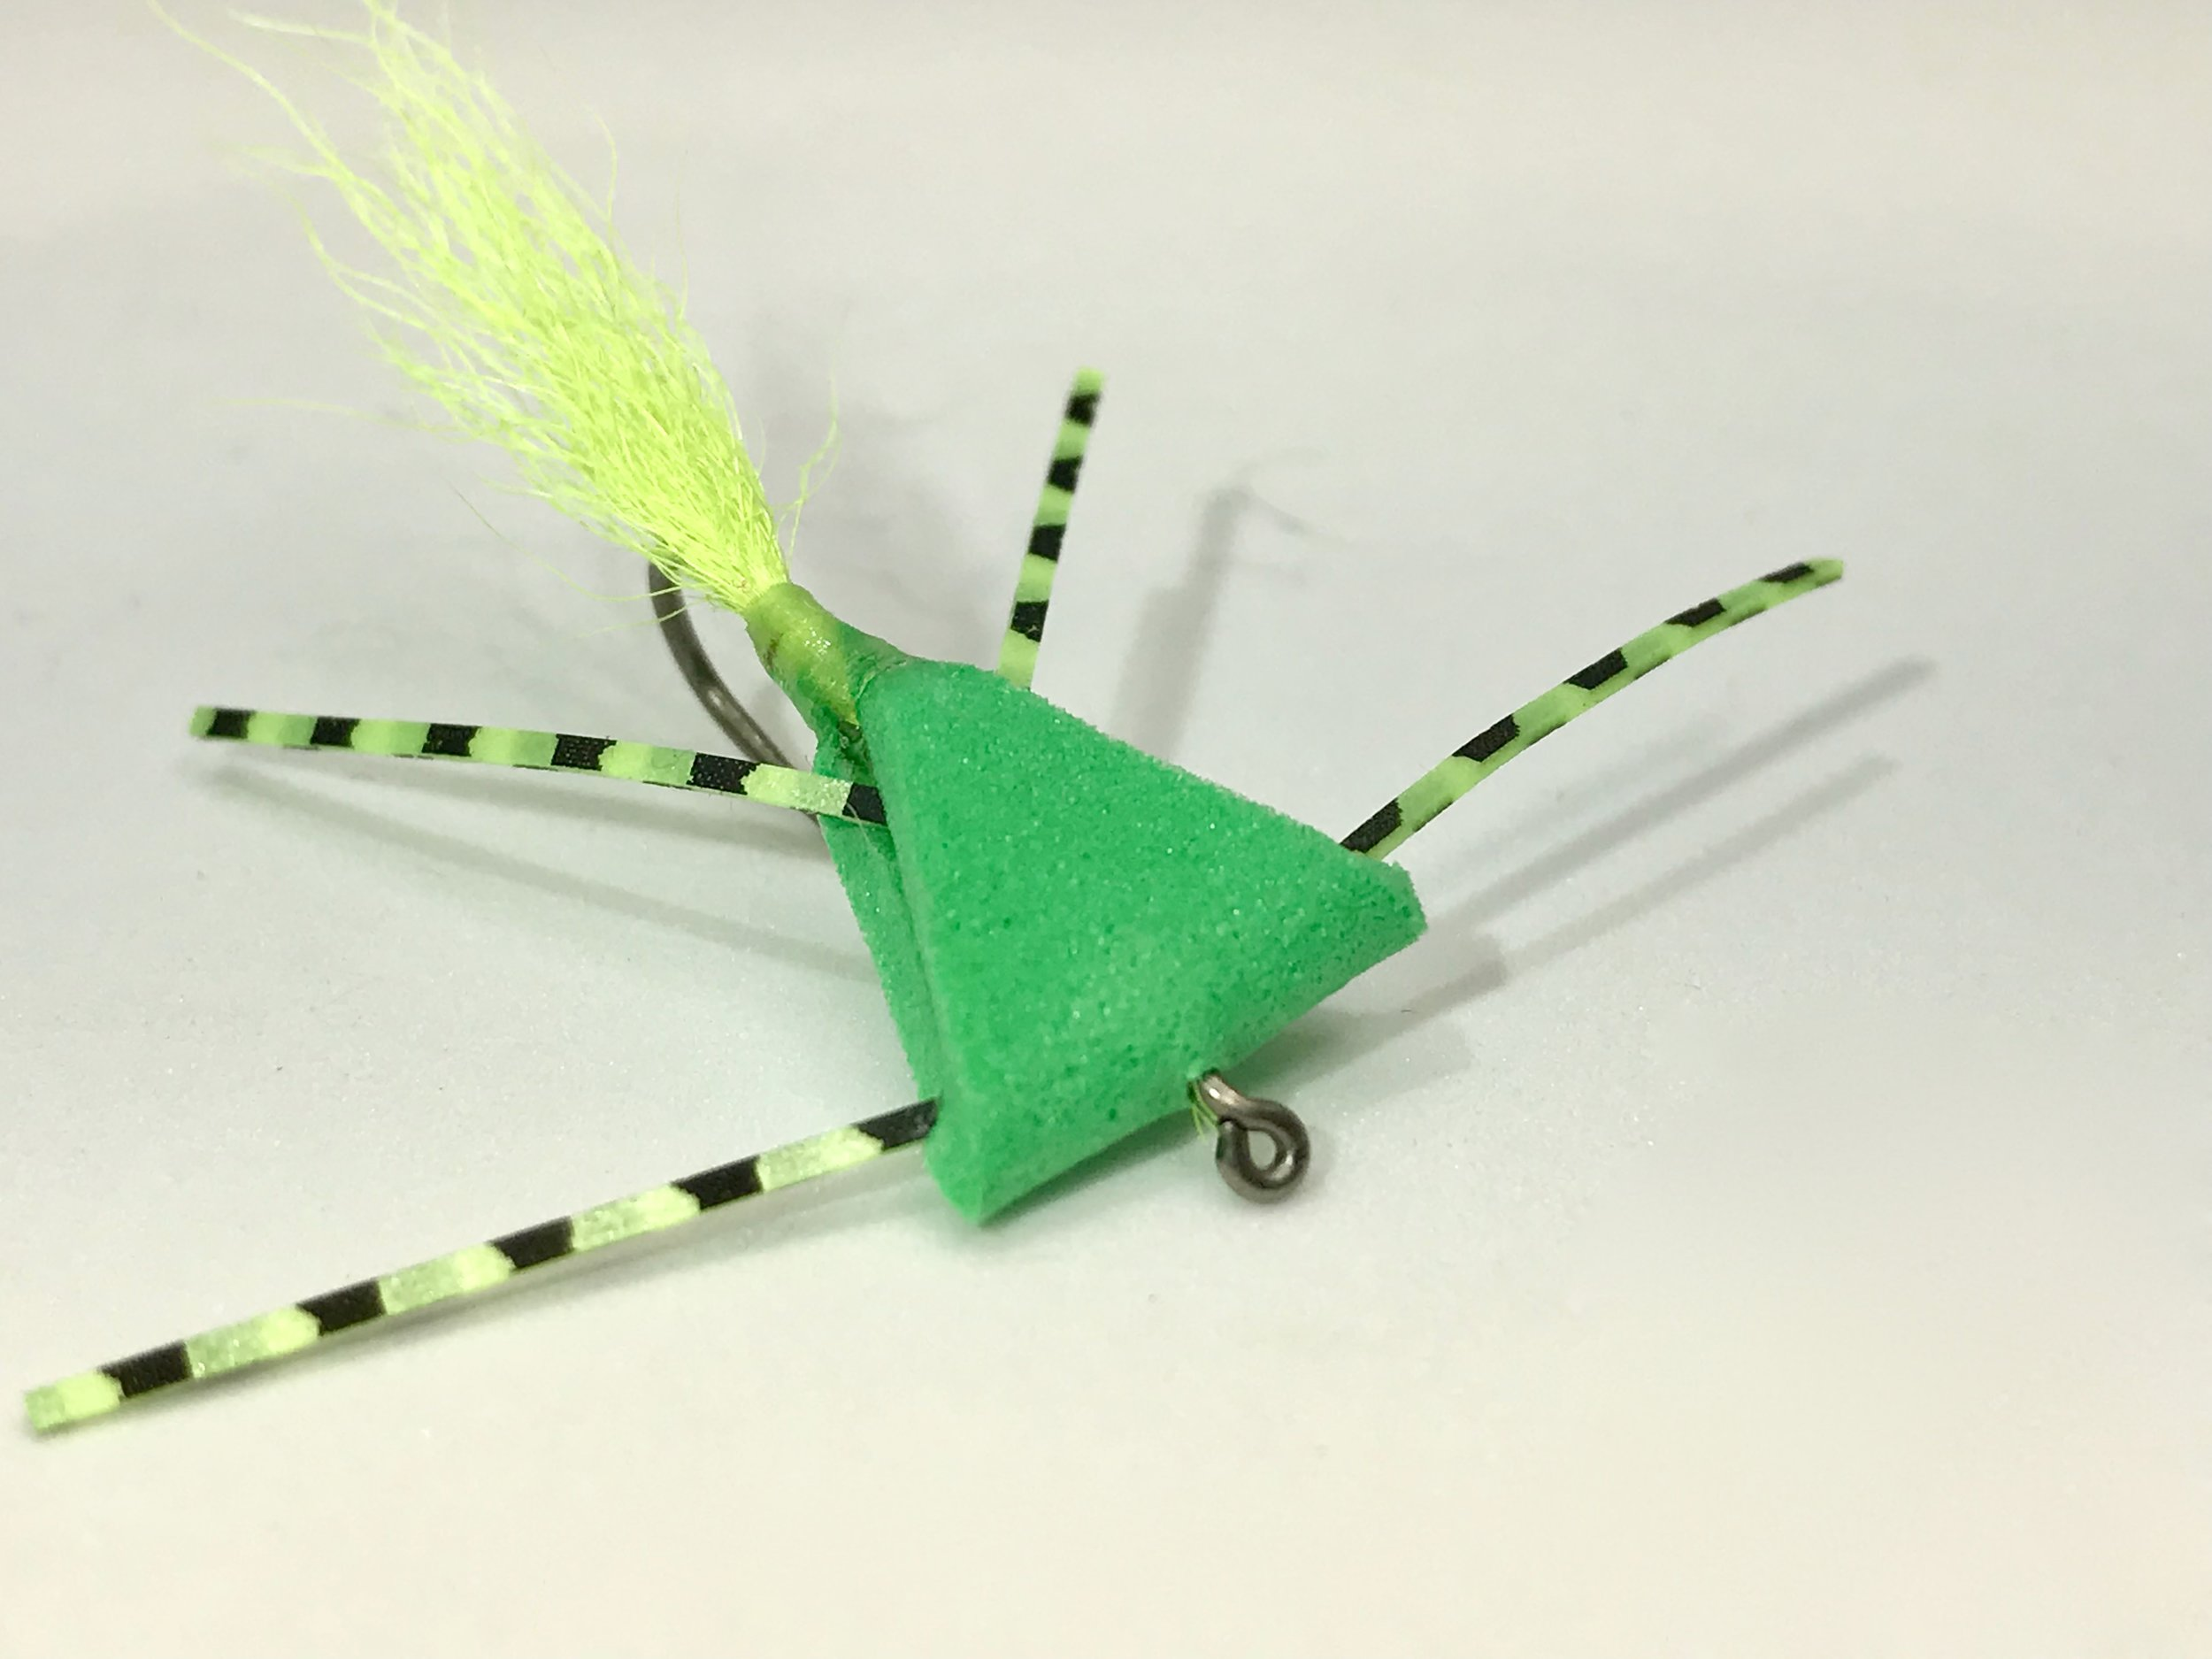 The Triangle Bug in my favorite color combination Bright Green/Chartreuse.